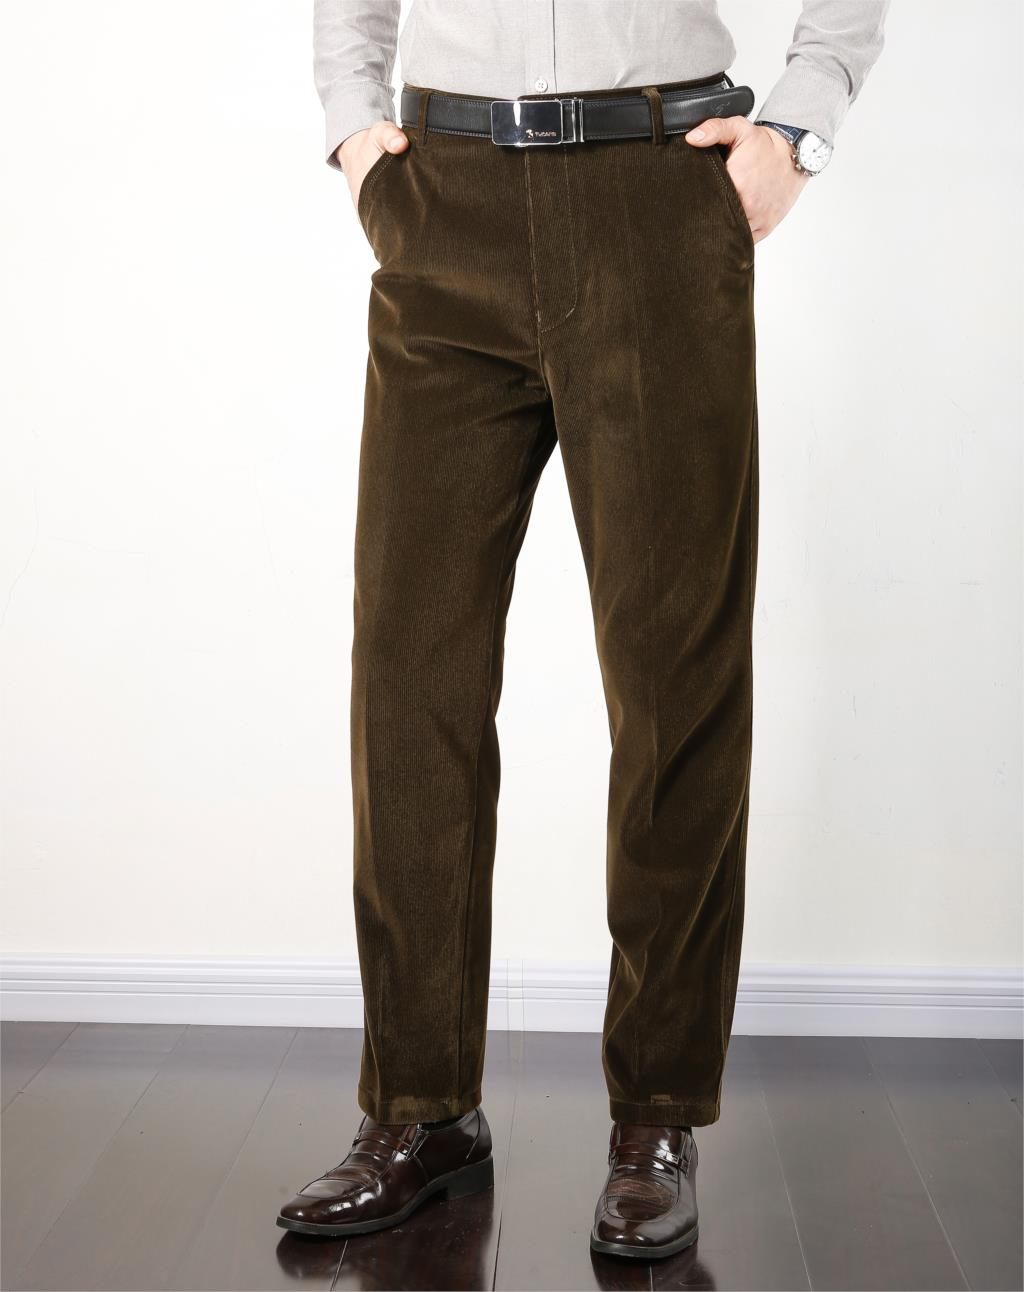 Autumn Spring corduroy trousers men s leisure pants high waist straight middle aged wash and wear Autumn Spring corduroy trousers men's leisure pants high waist straight middle-aged wash and wear business casual corduroy pants